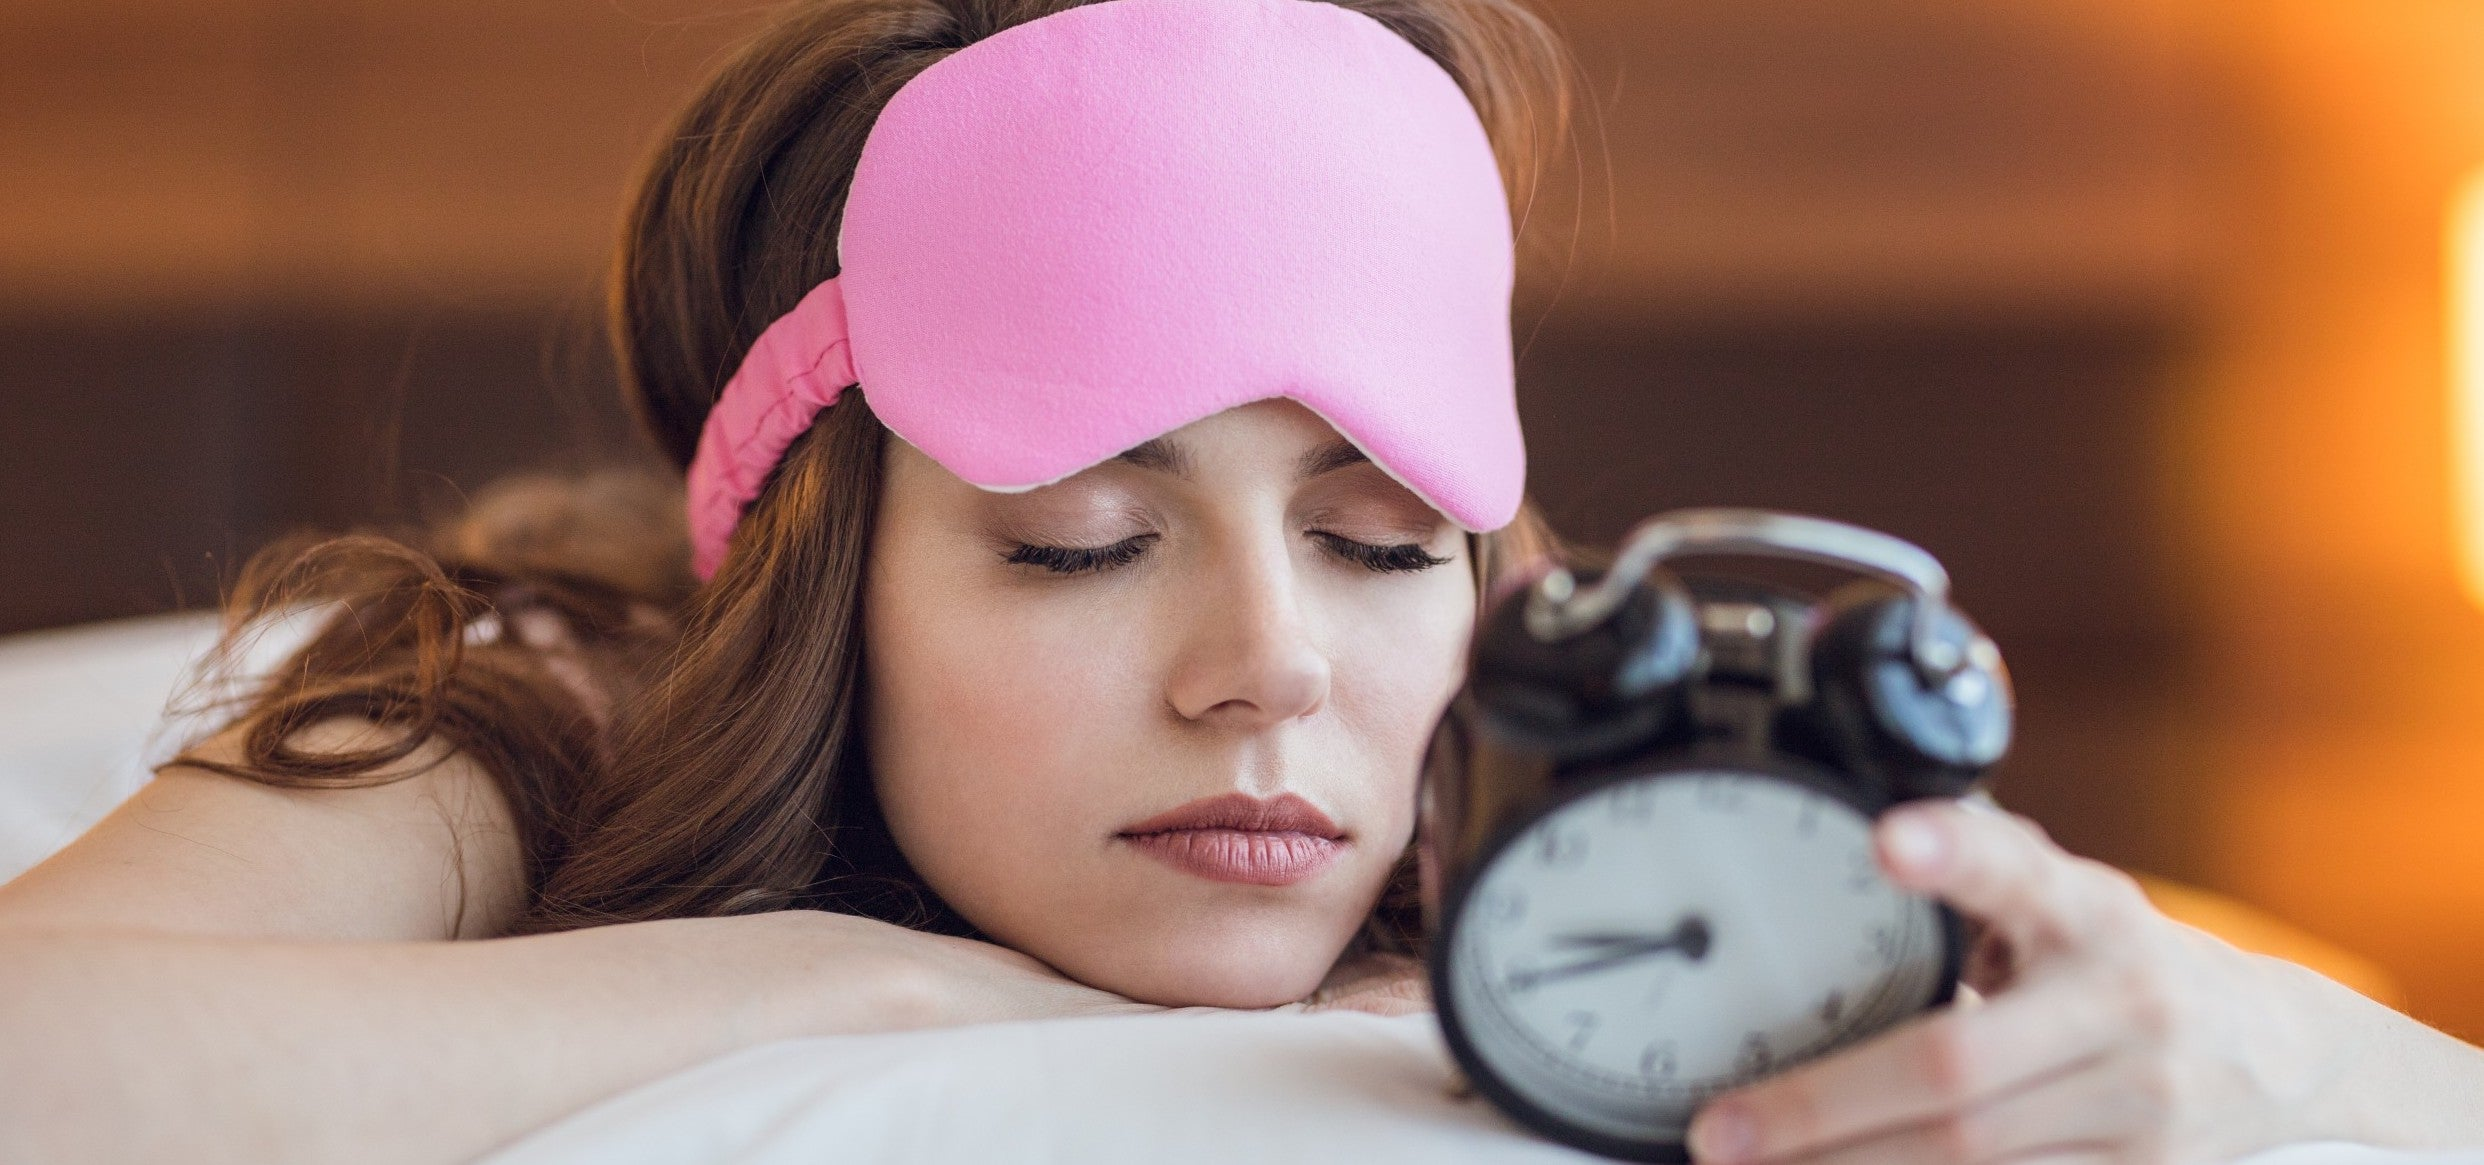 Young lady with a sleep mask on her forehead, dozing off on her bed while holding an alarm clock